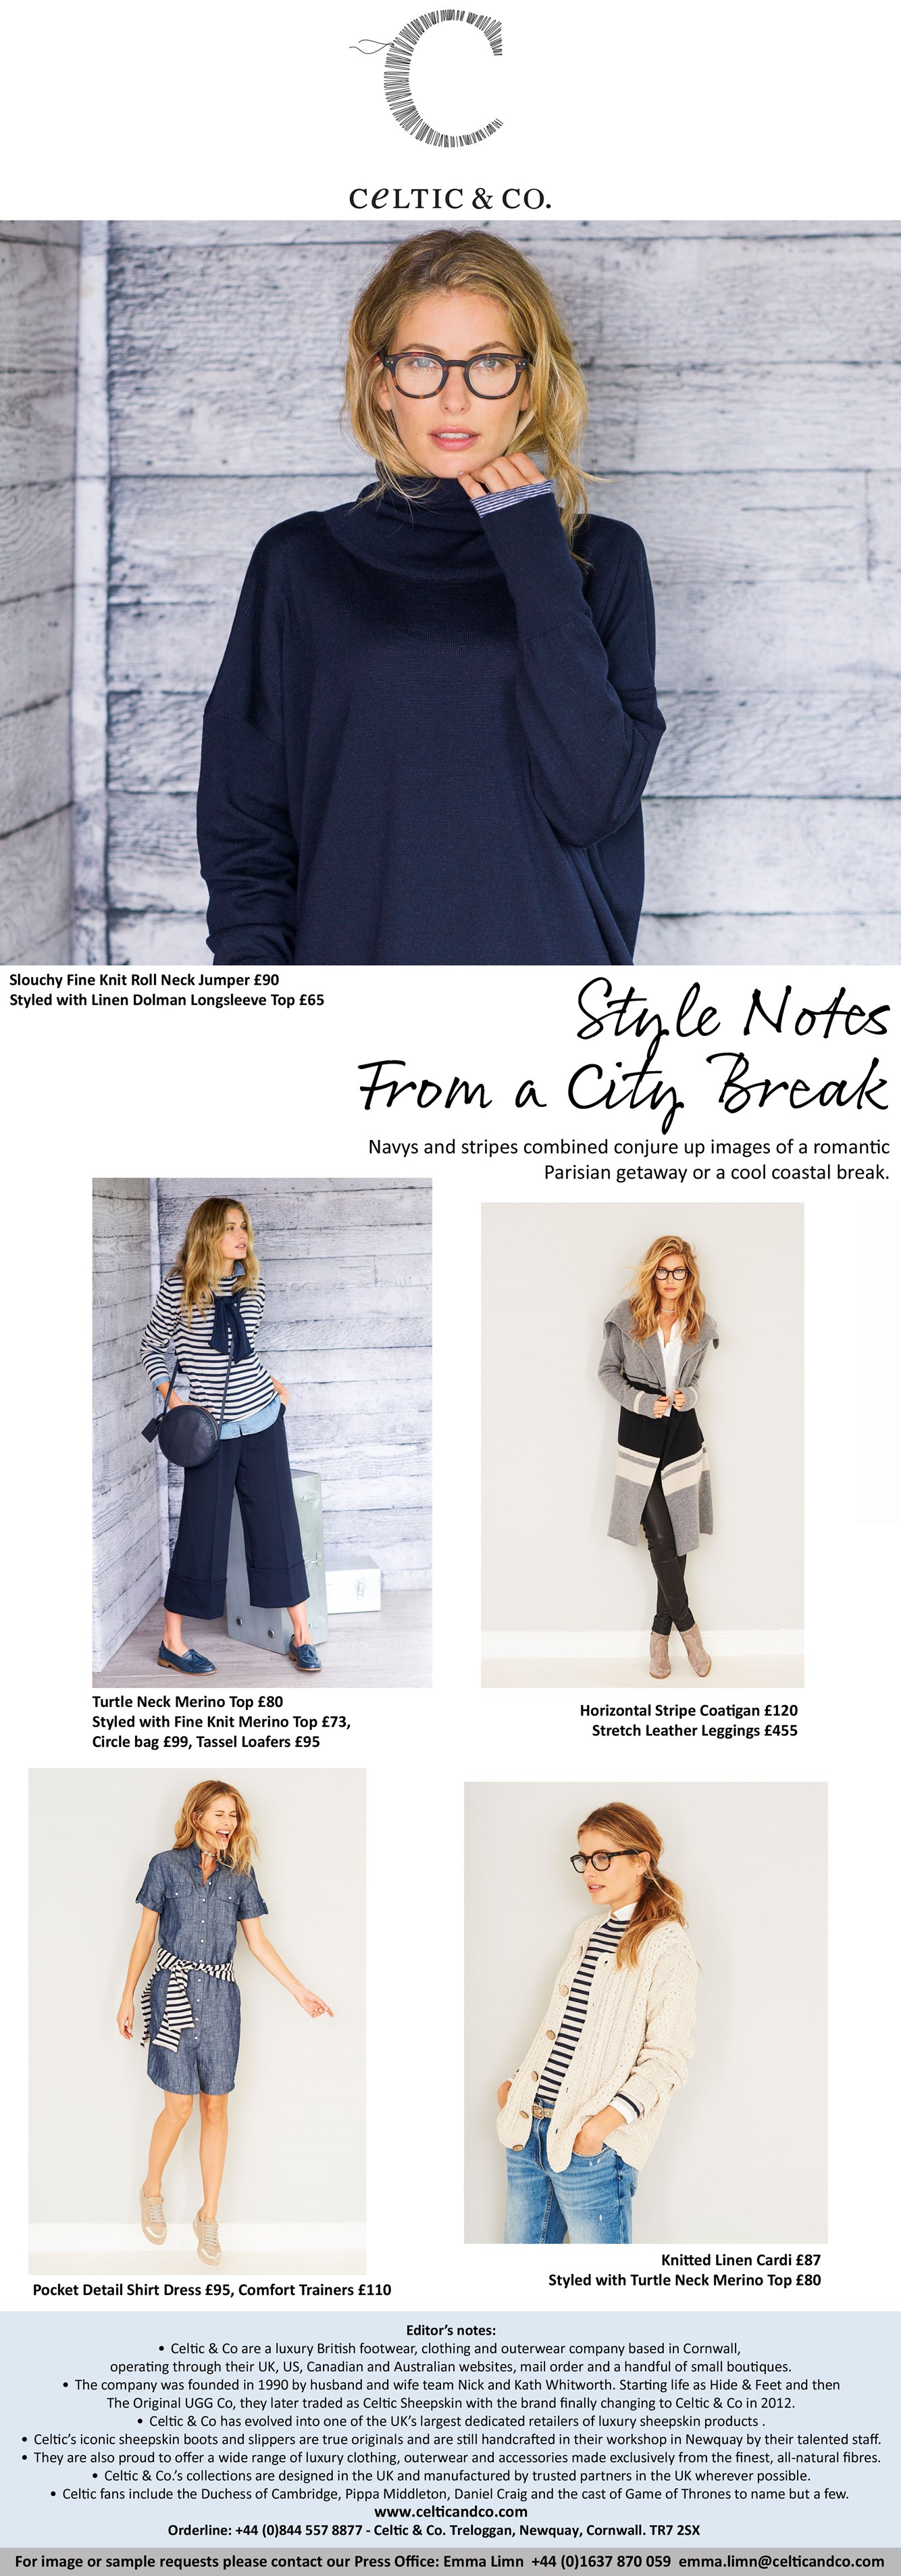 style notes from a city break- celtic and co.jpg